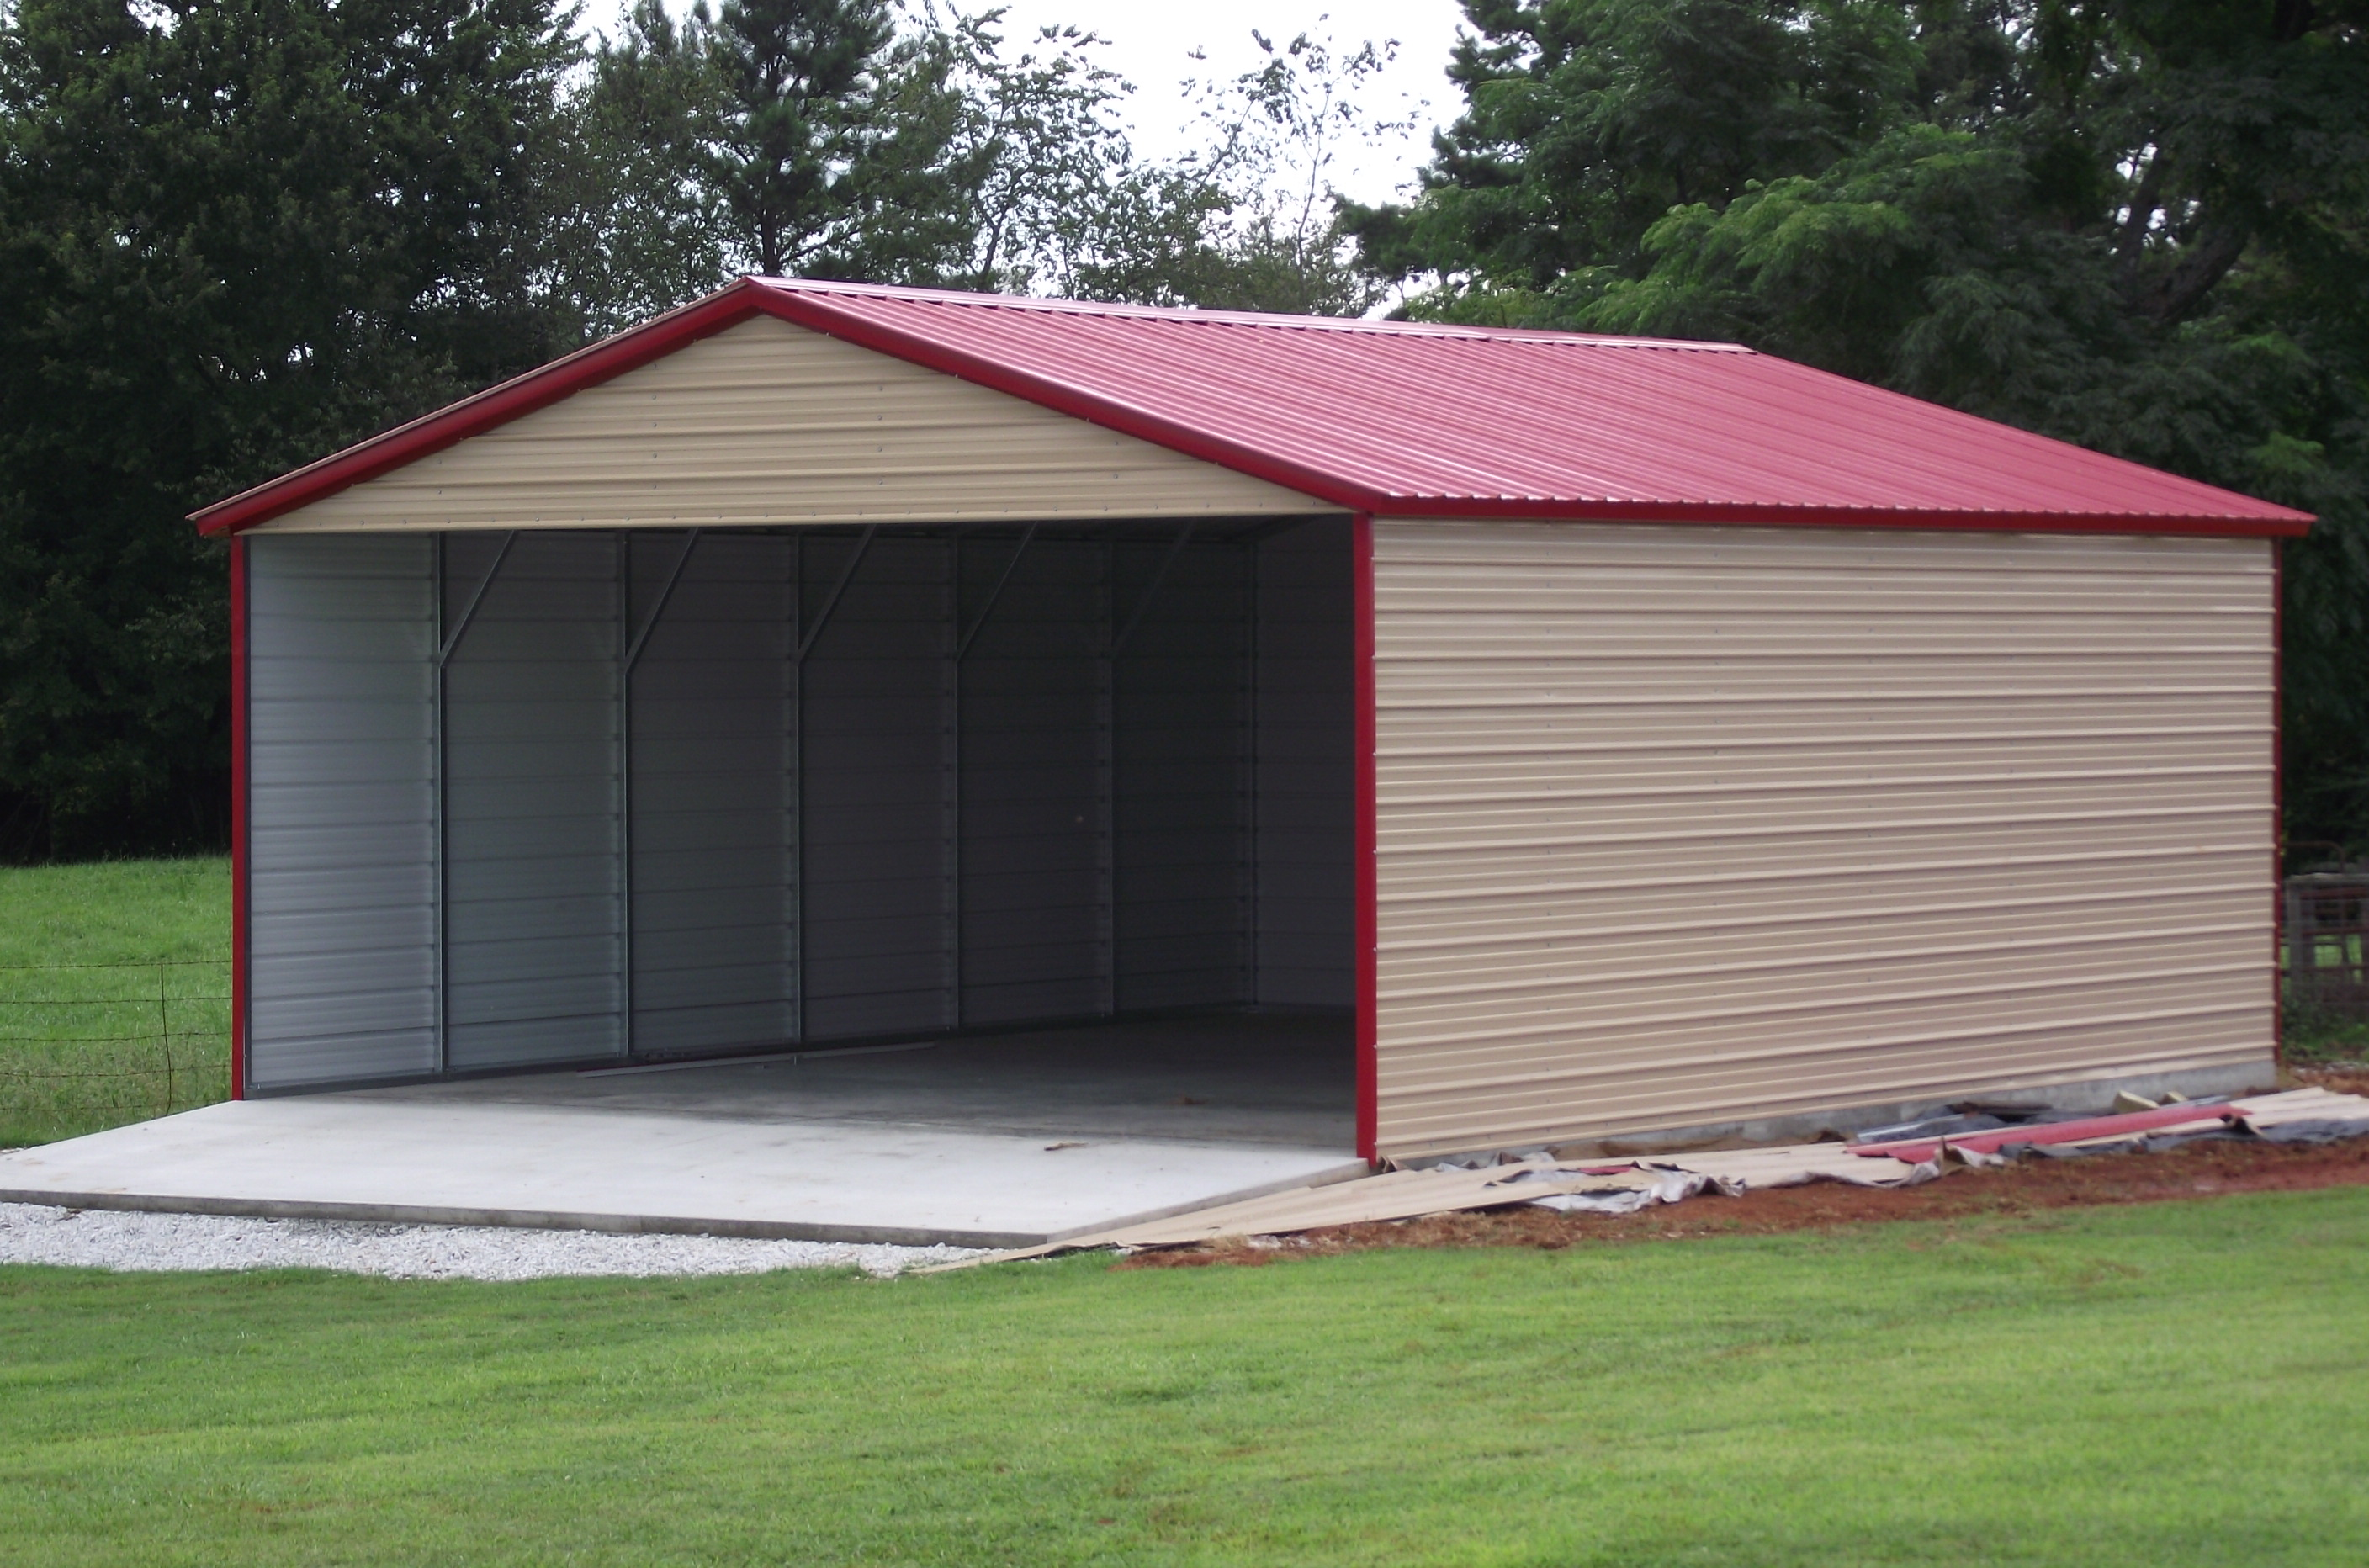 Carports arizona az metal carports arizona az for Large garage kits